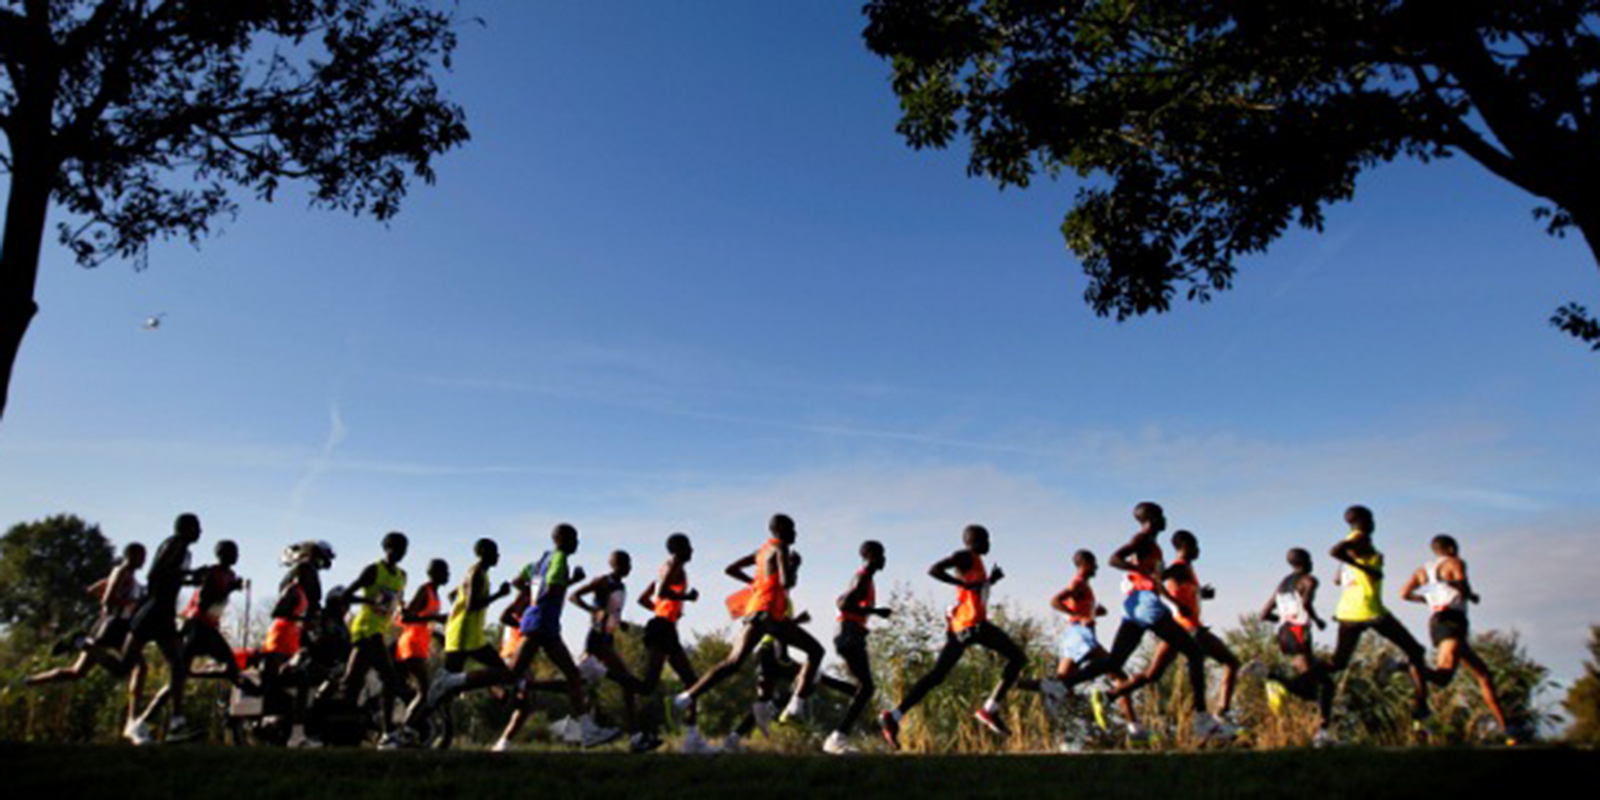 a group of runners taking part in the Amsterdam Marathon